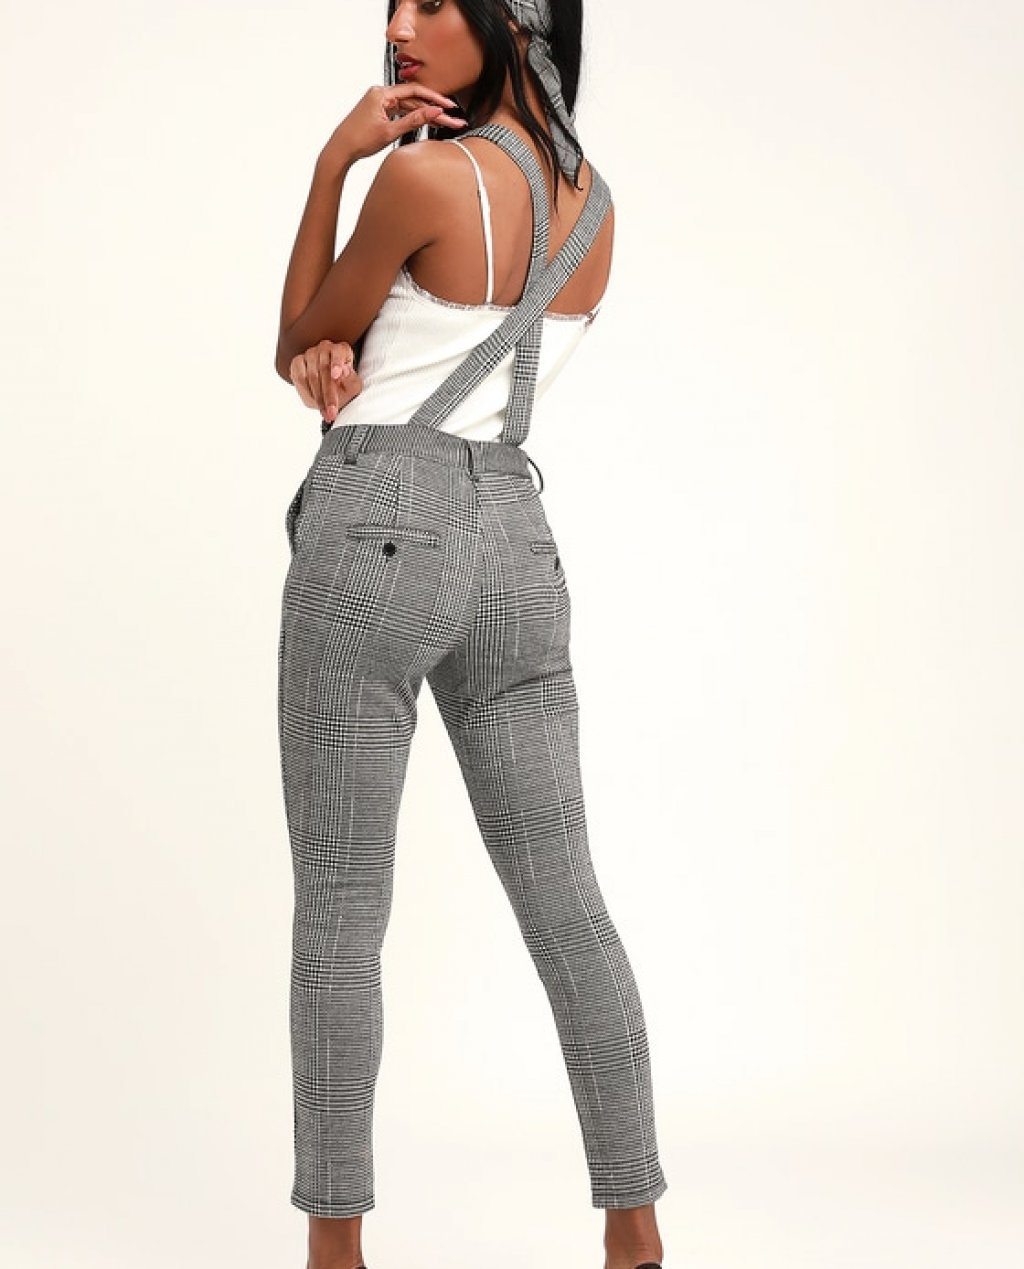 Checkmate Black and White Glen Plaid Jumpsuit